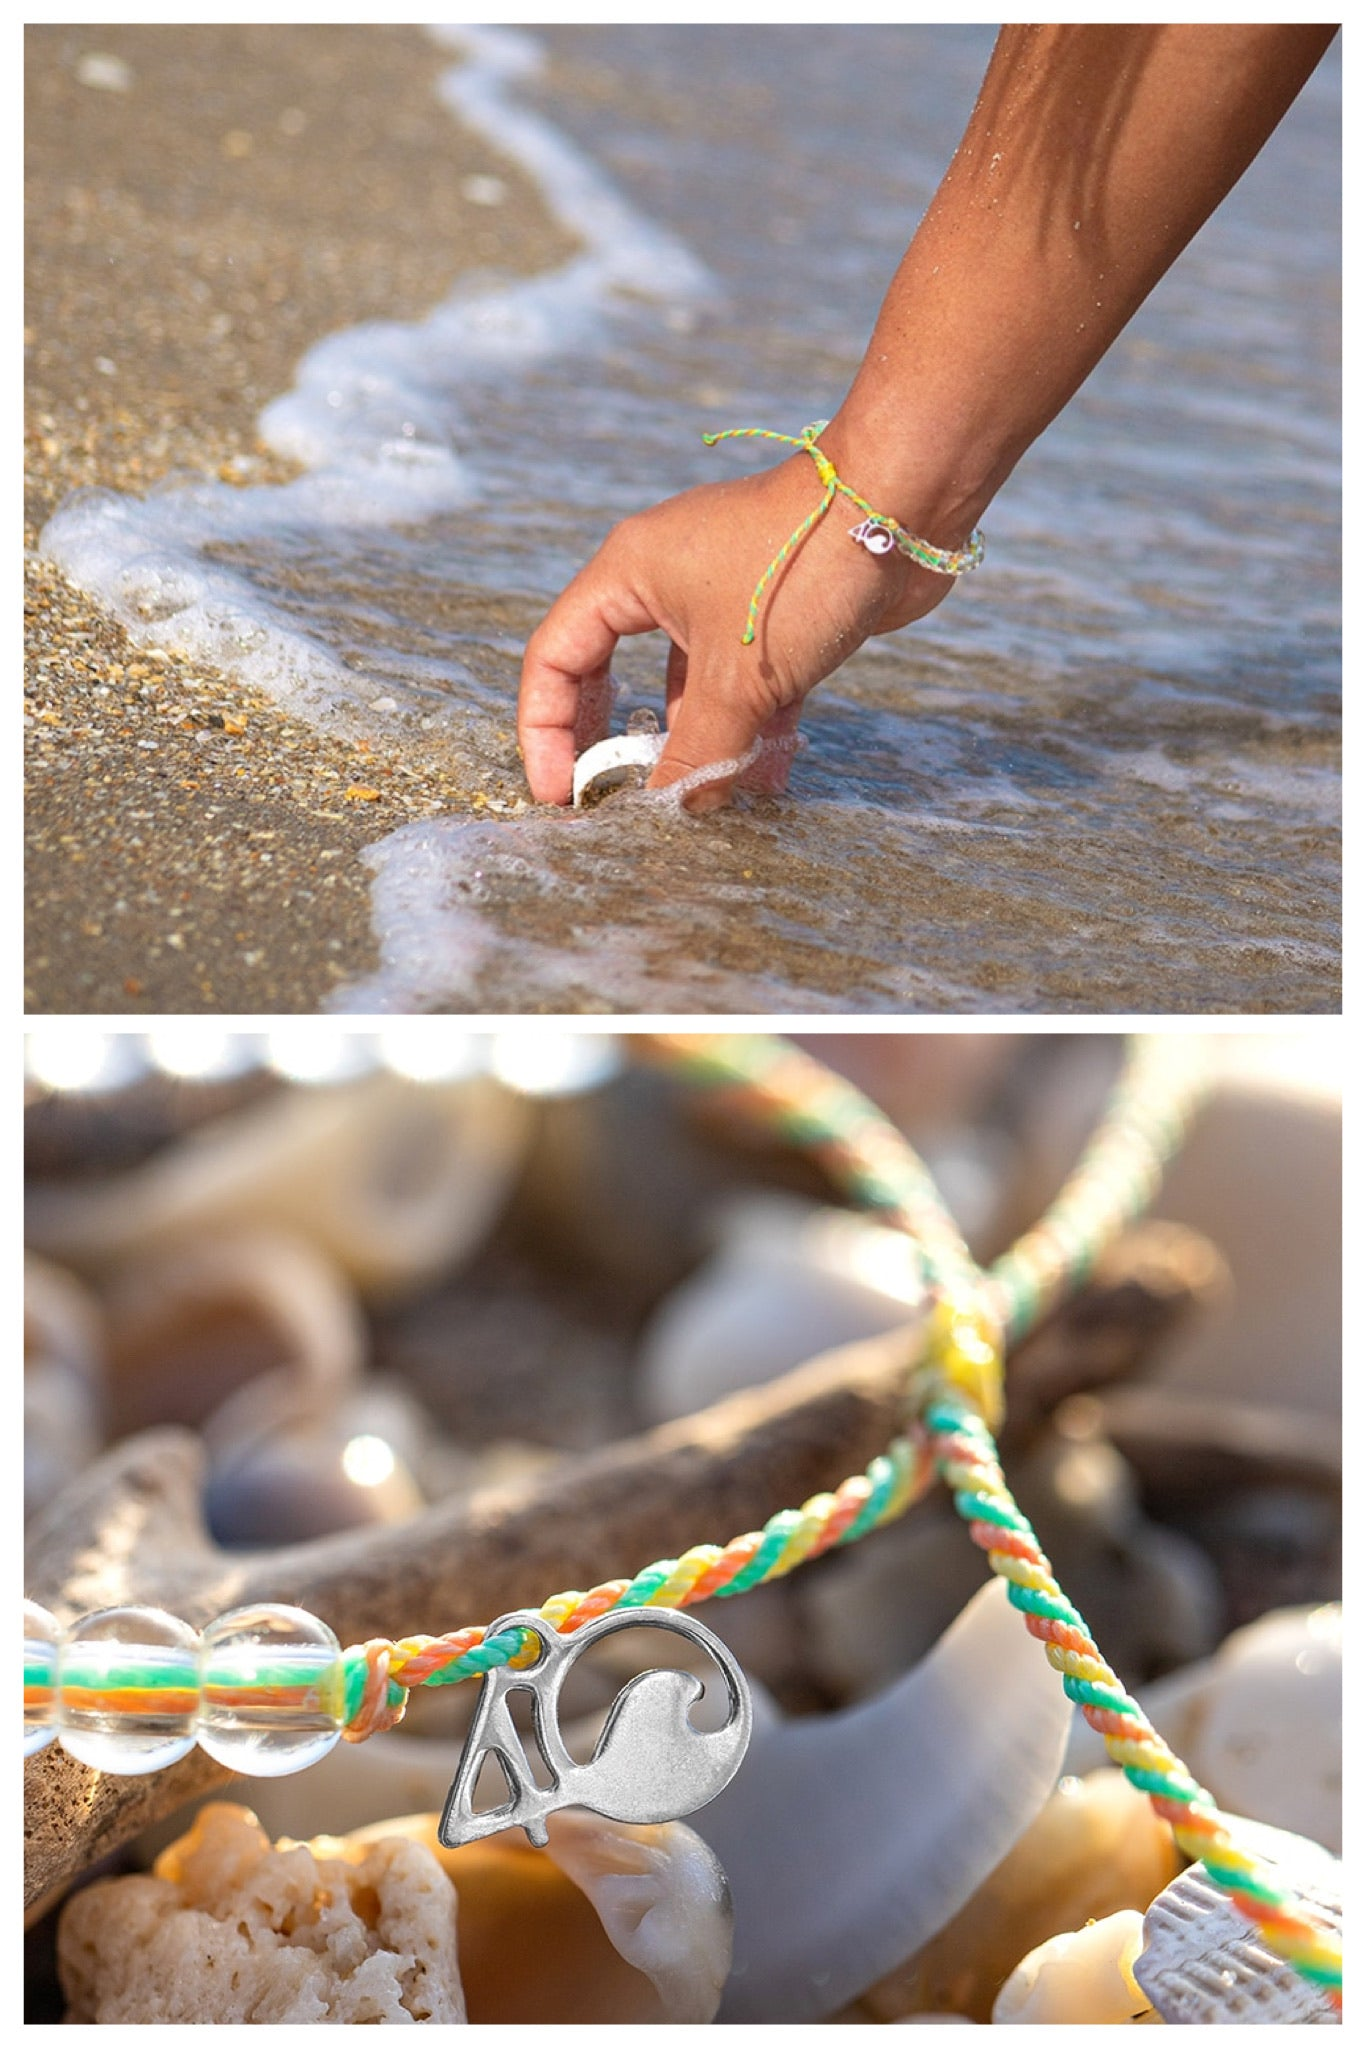 The Sea Star Bracelet by 4oceans